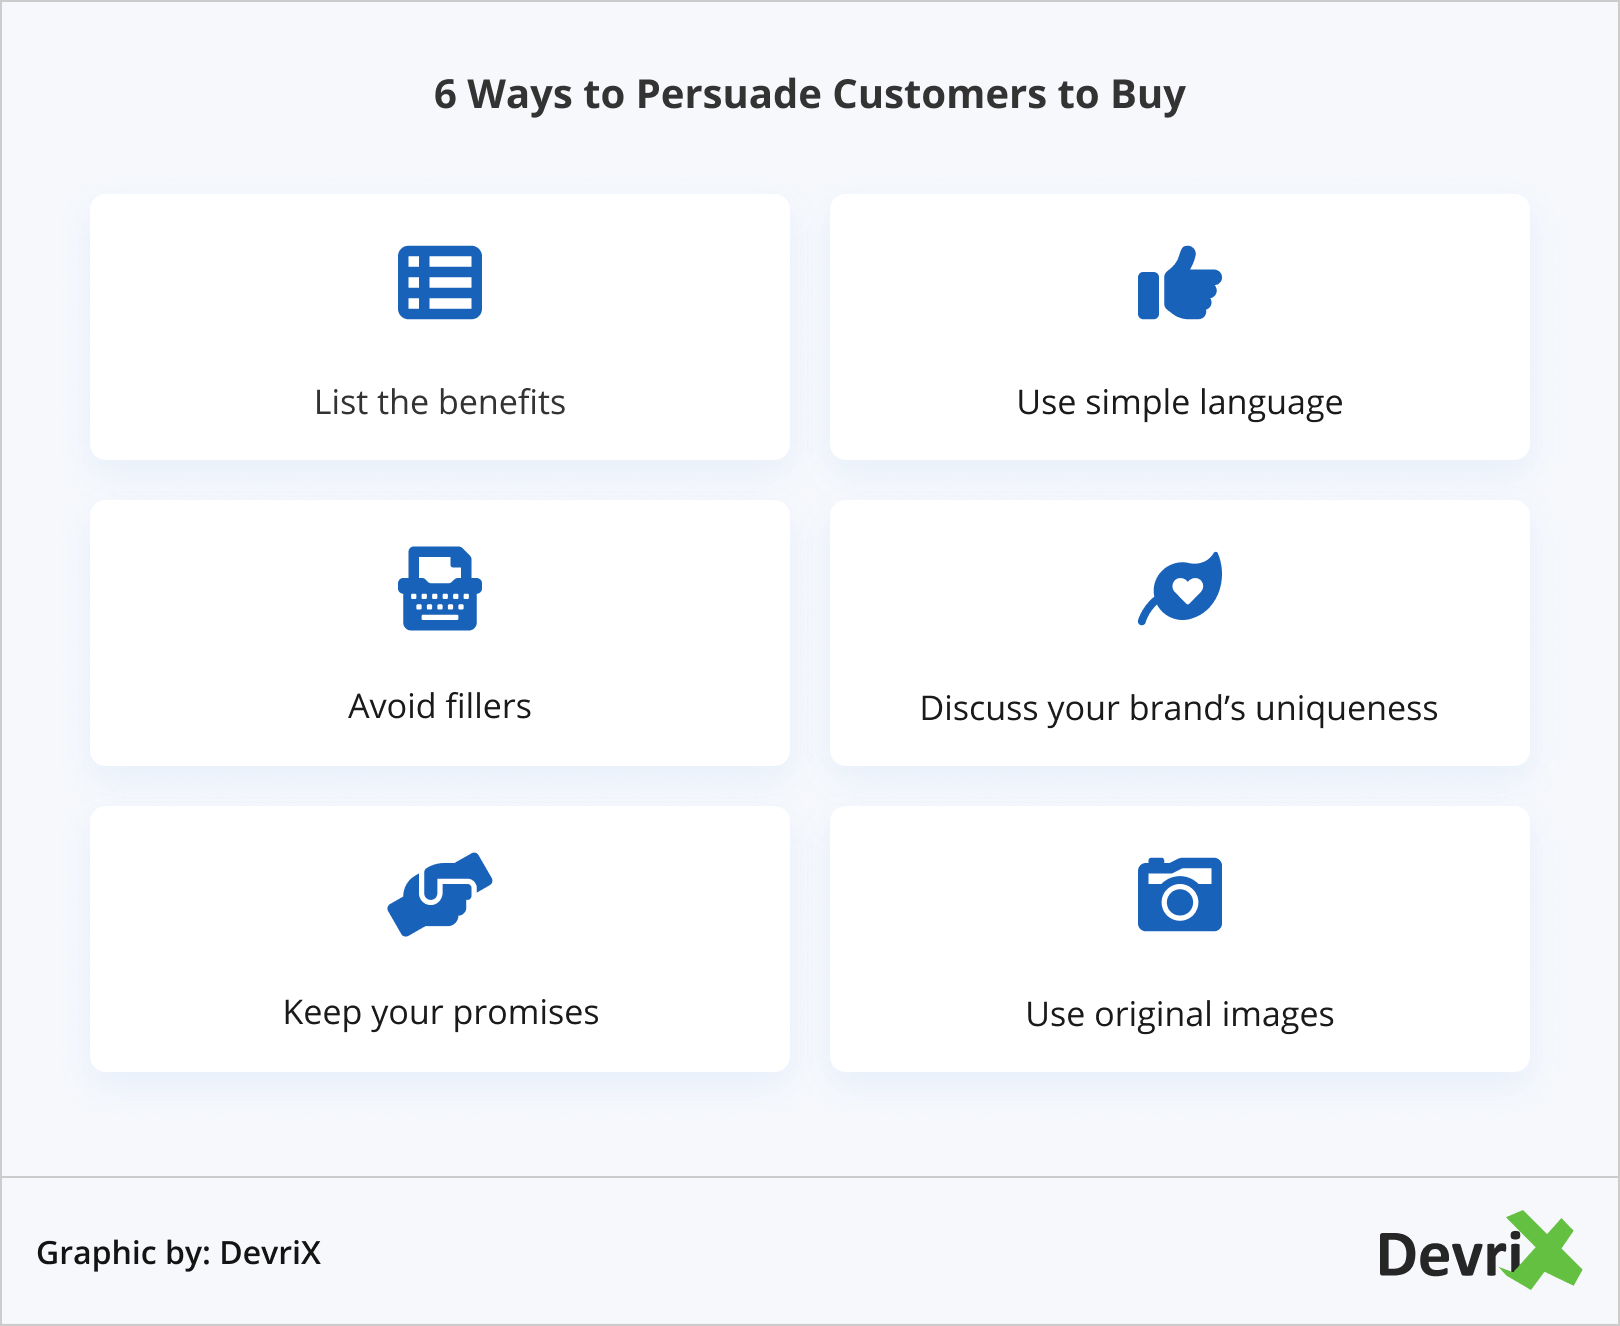 6 Ways to Persuade Customers to Buy